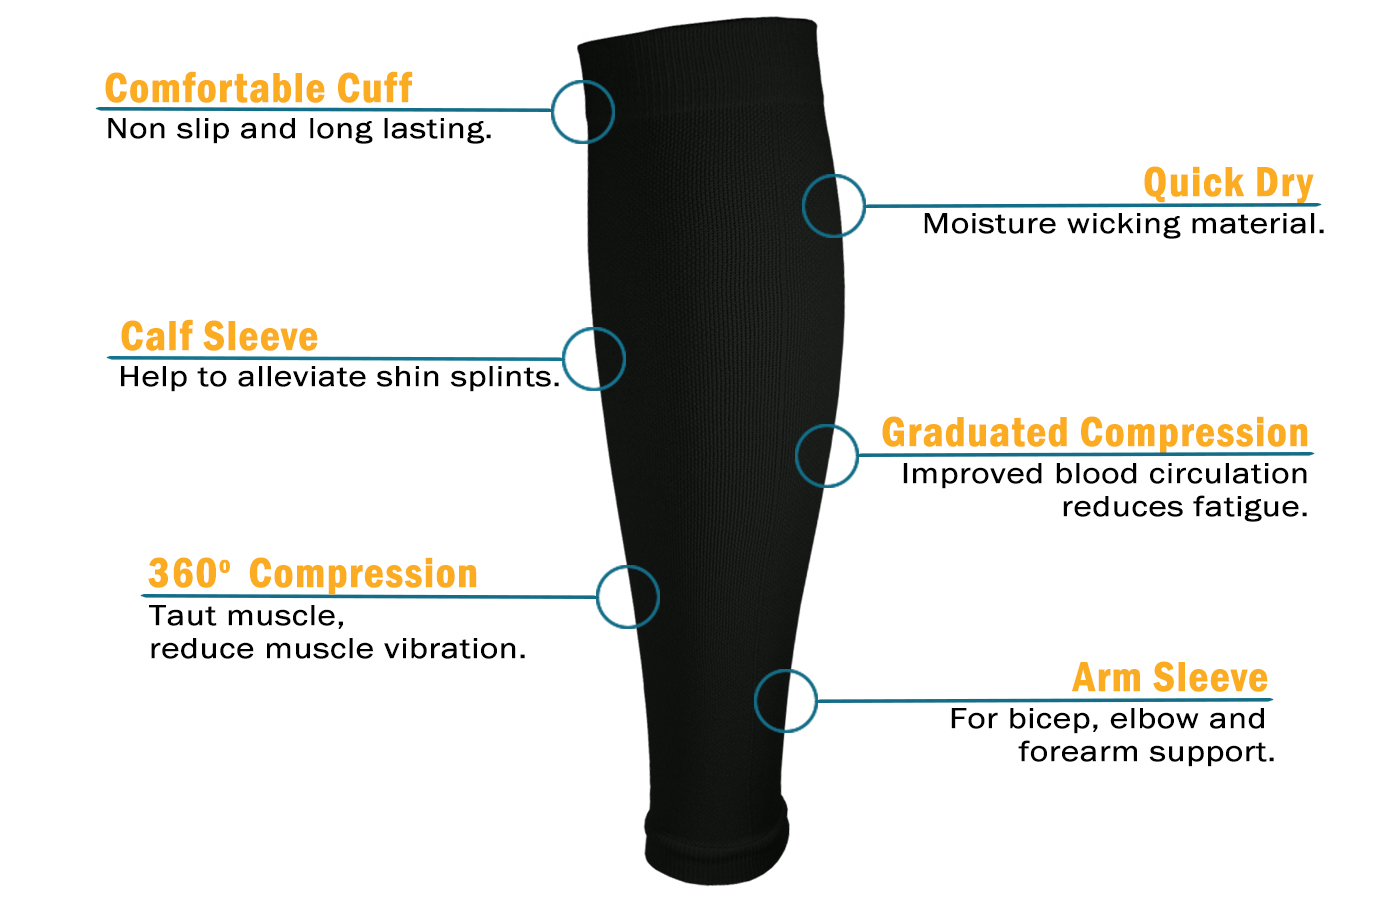 Elbow Brace Compression Arm Sleeve